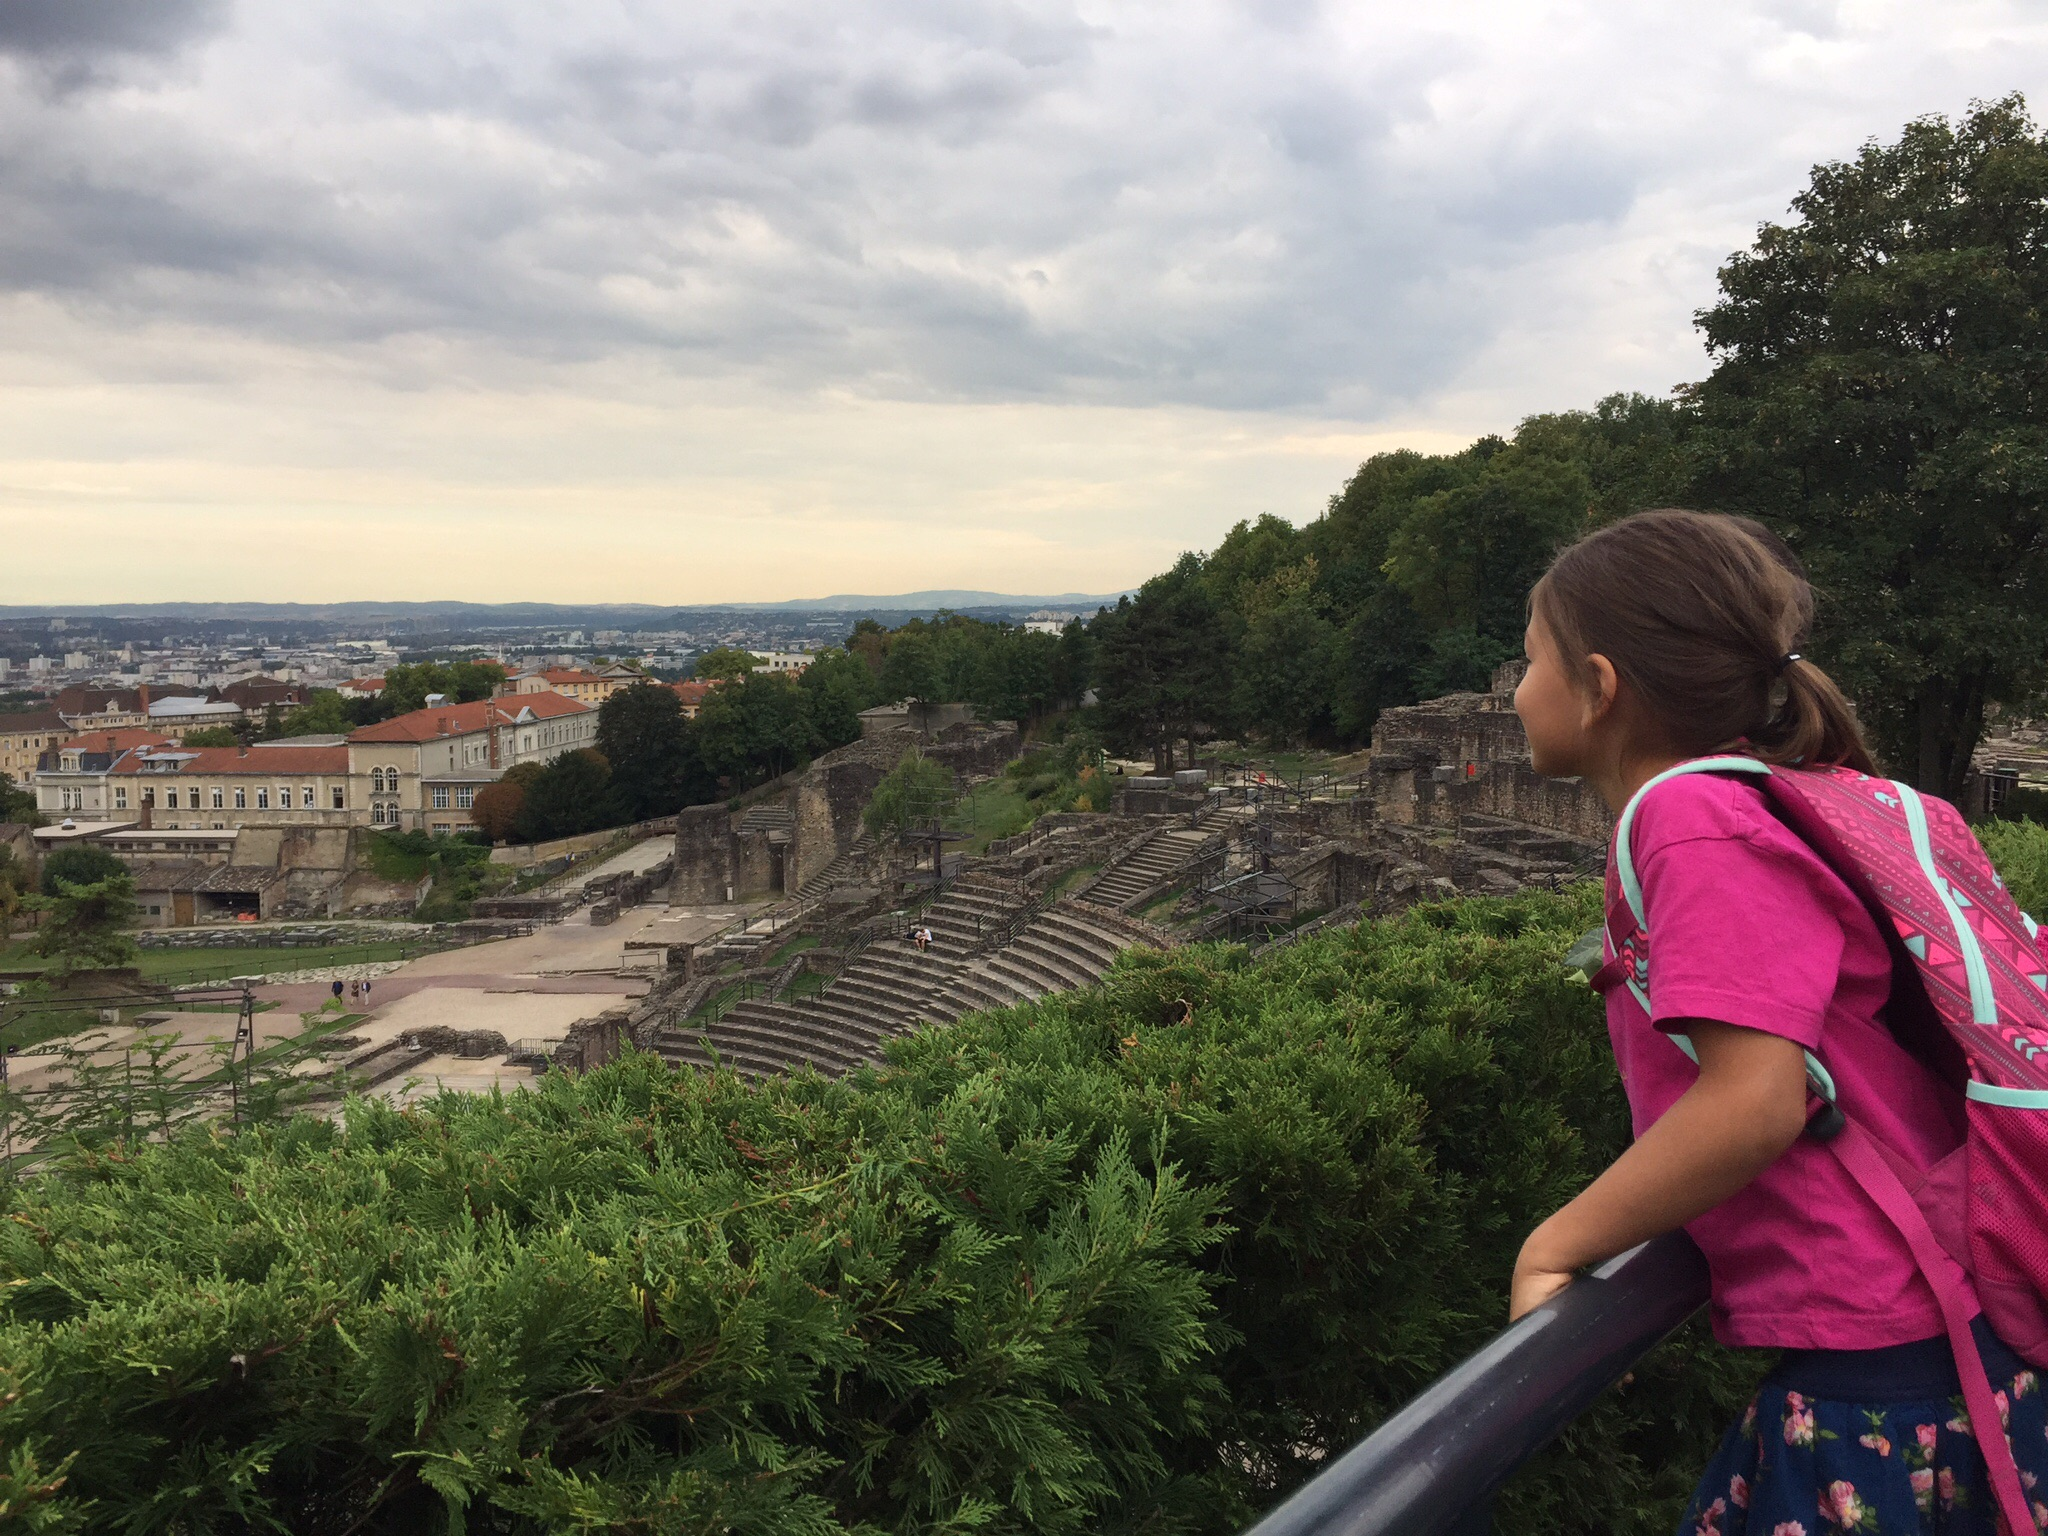 Examining the view of Lyon from Fourviere Hill